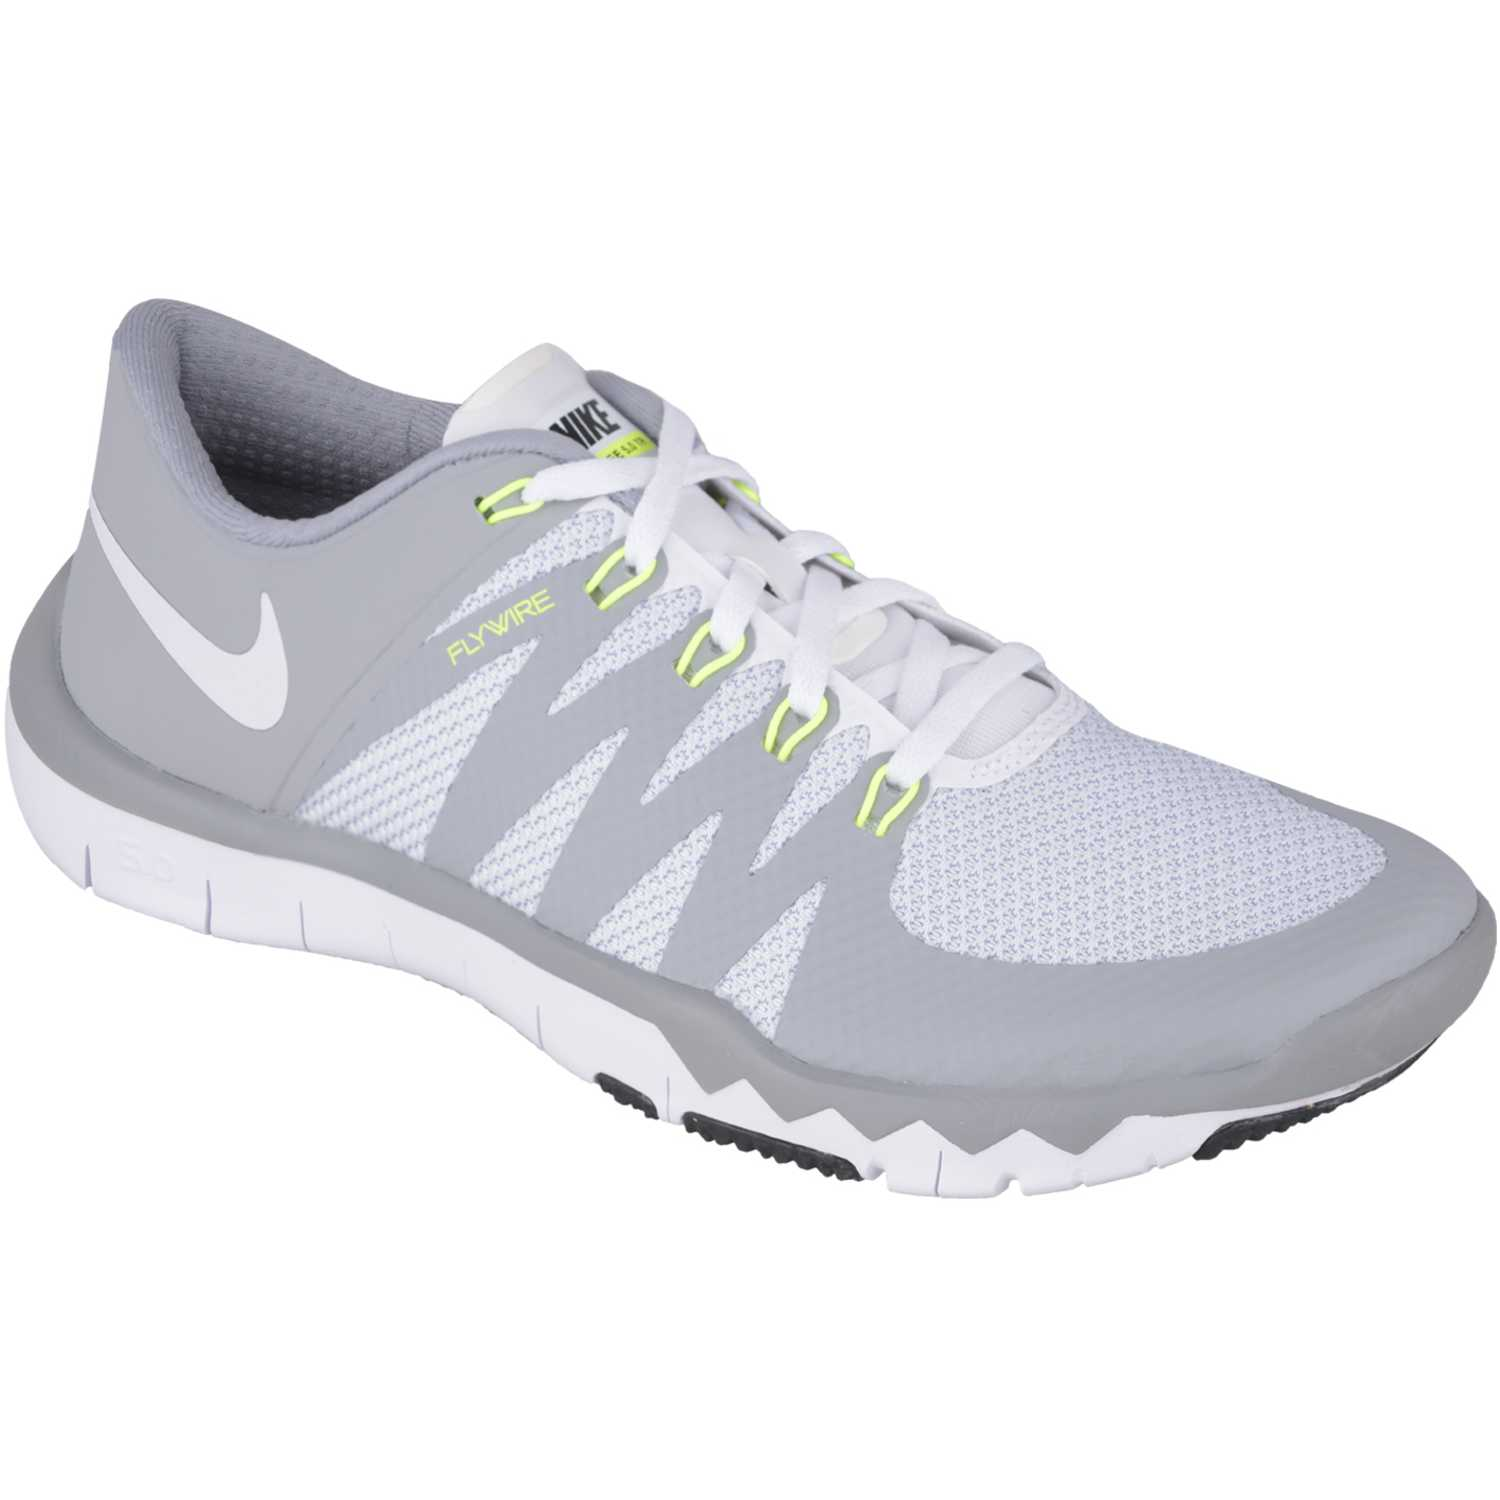 check out 337a0 2ee6b Fiesta de Mujer Nike gris / blanco free trainer 5.0 v6 ...